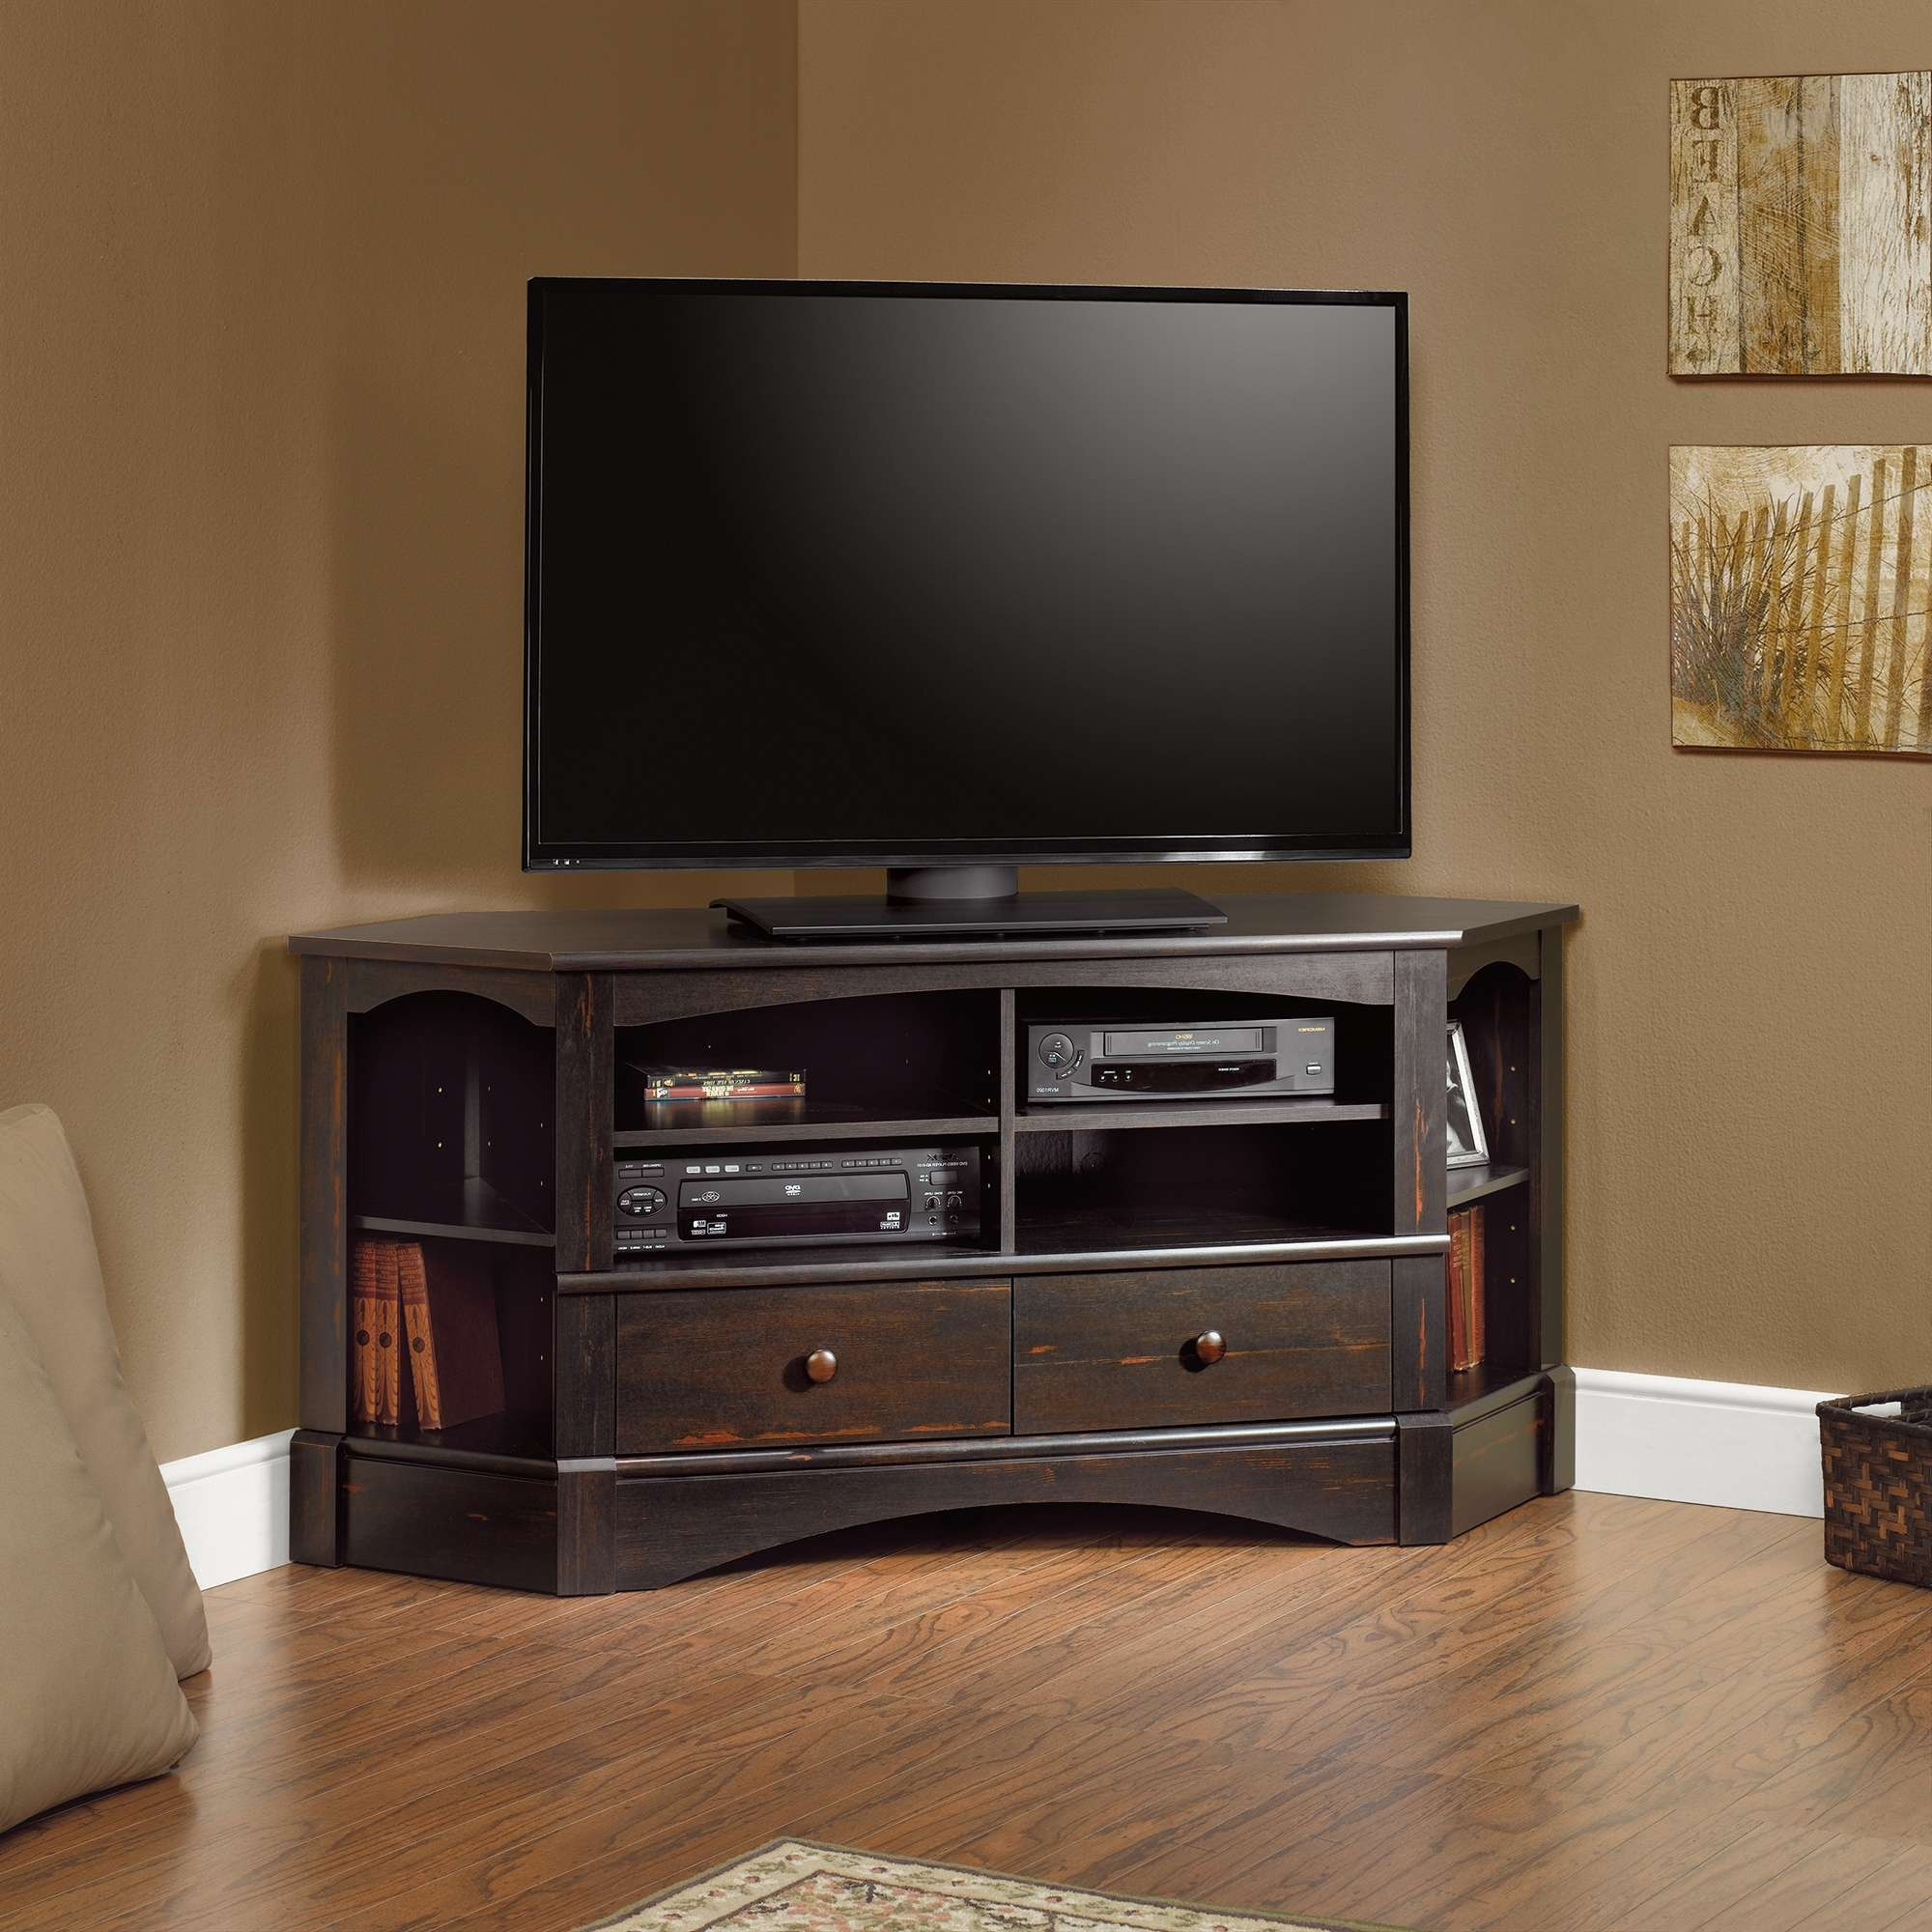 Harbor View | Corner Entertainment Credenza | 402902 | Sauder With Tv Stands For Corners (View 11 of 20)